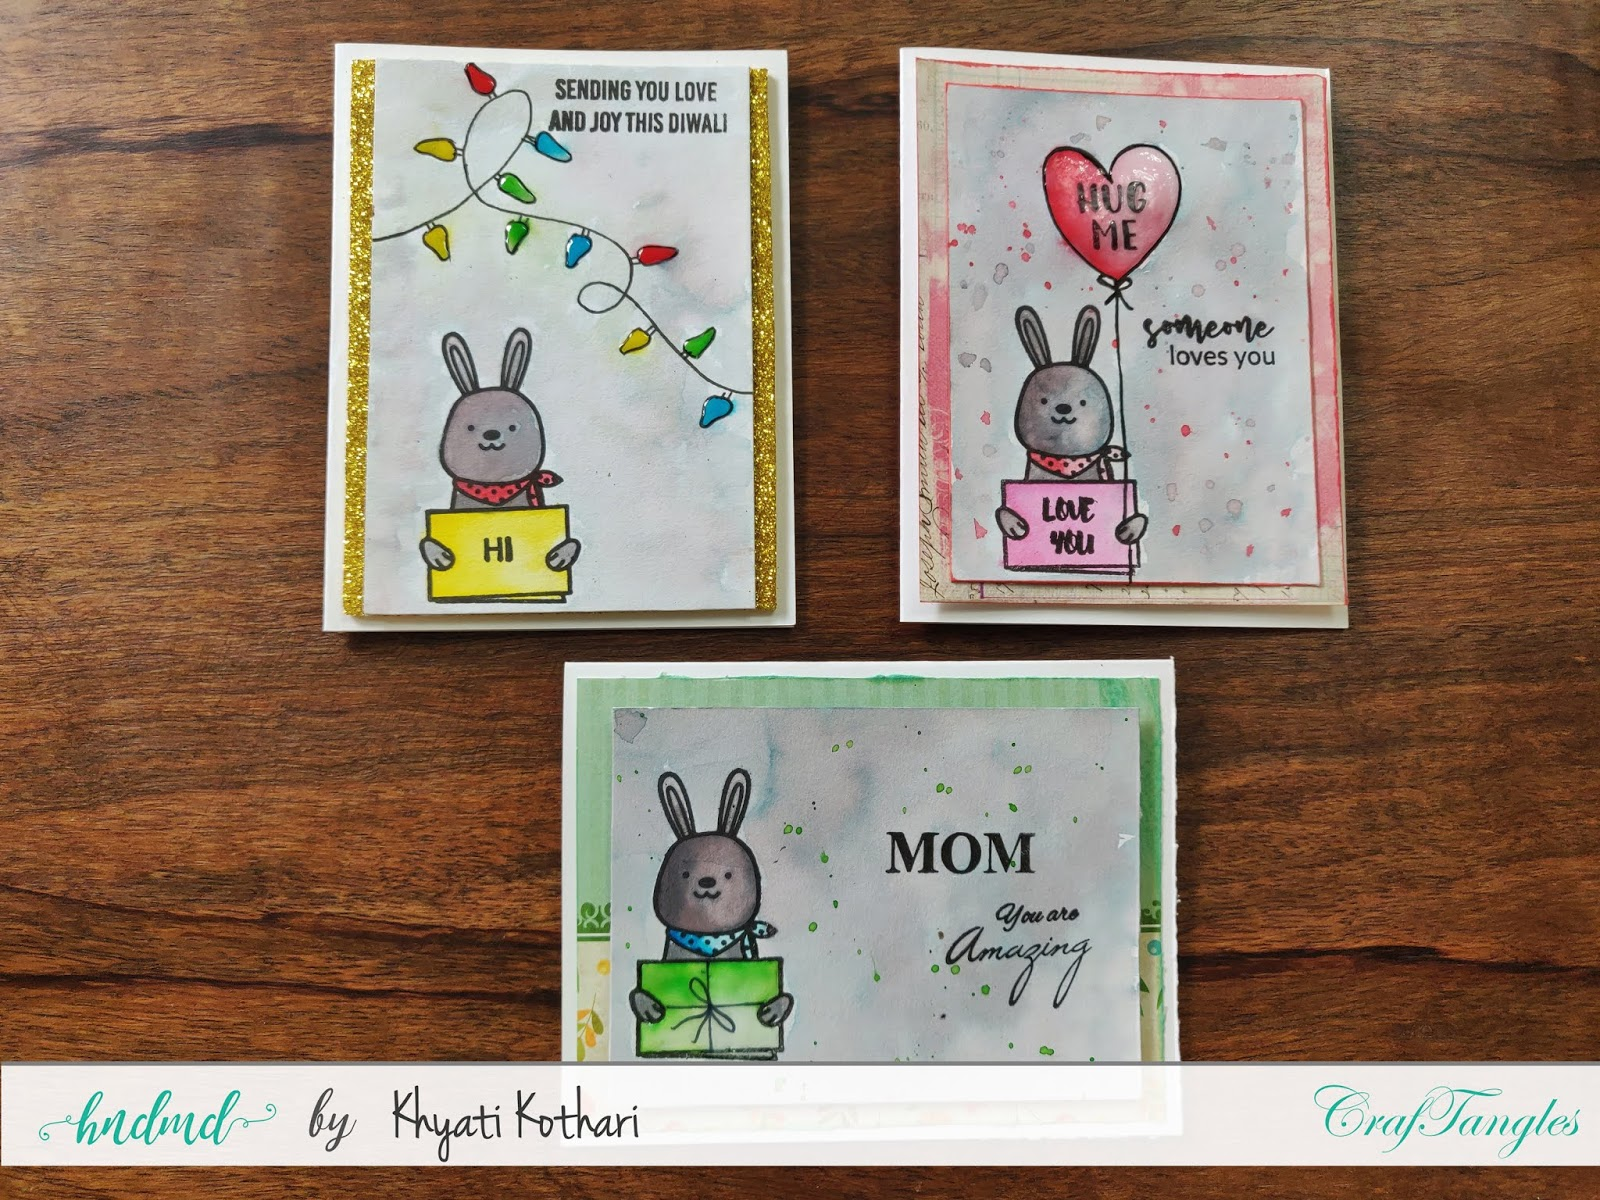 How to Stretch your stamps - Cardmaking video tutorial 6